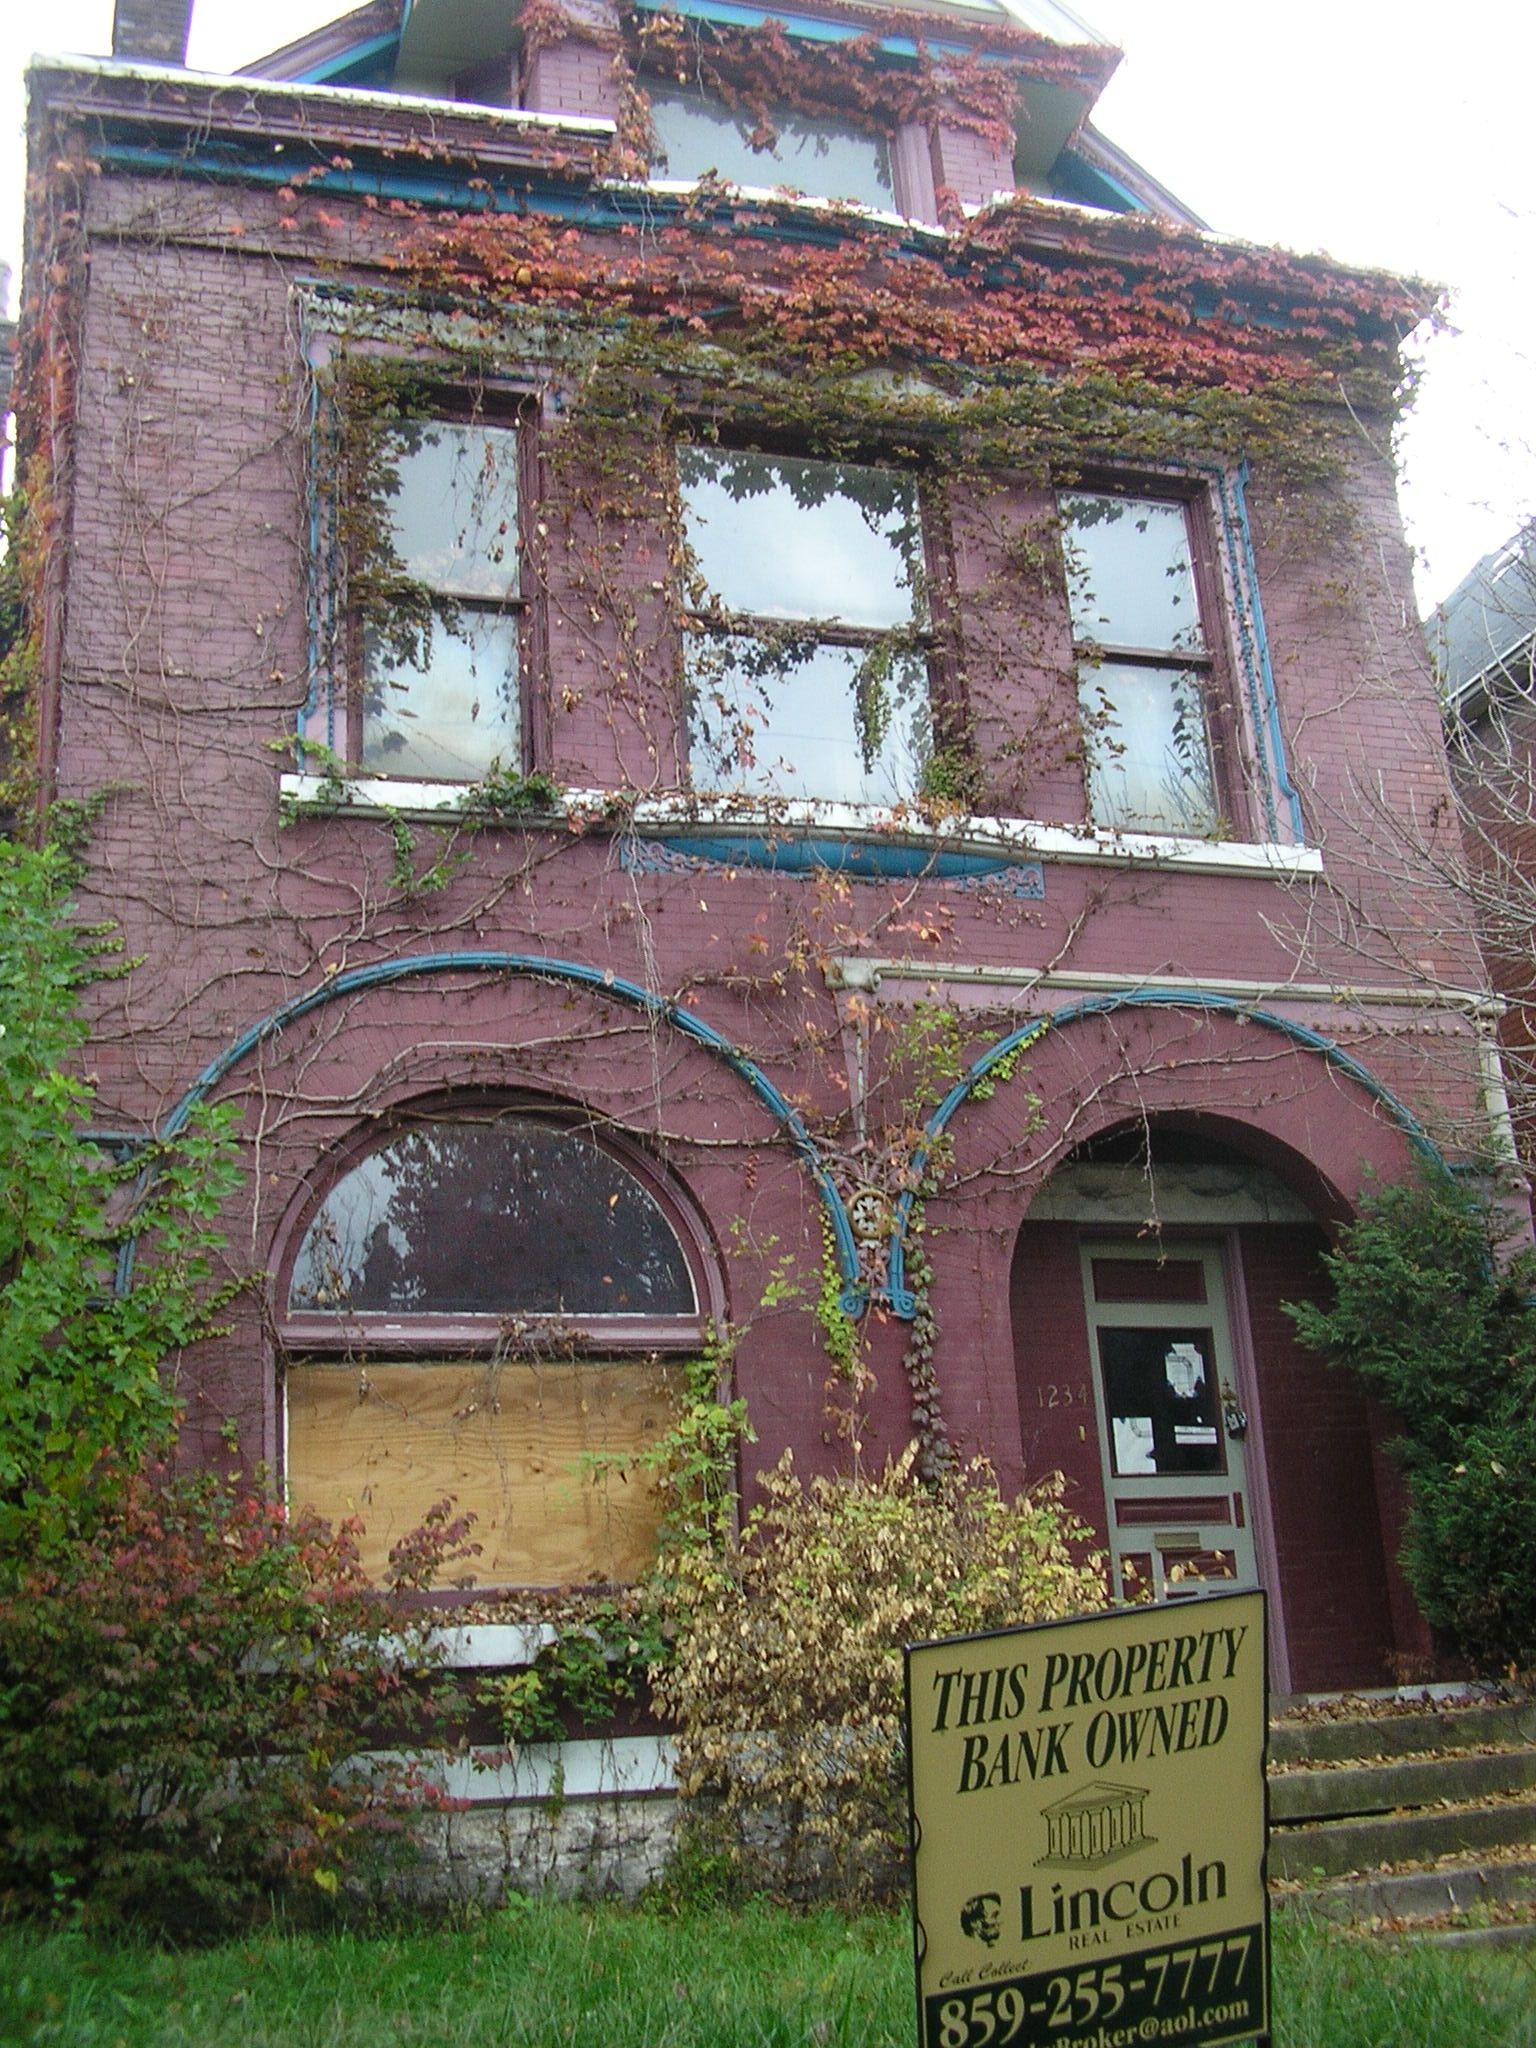 Old Abandoned Mansions for Sale http://commons.wikimedia.org/wiki/File:Old_louisville_abandoned_house.jpg